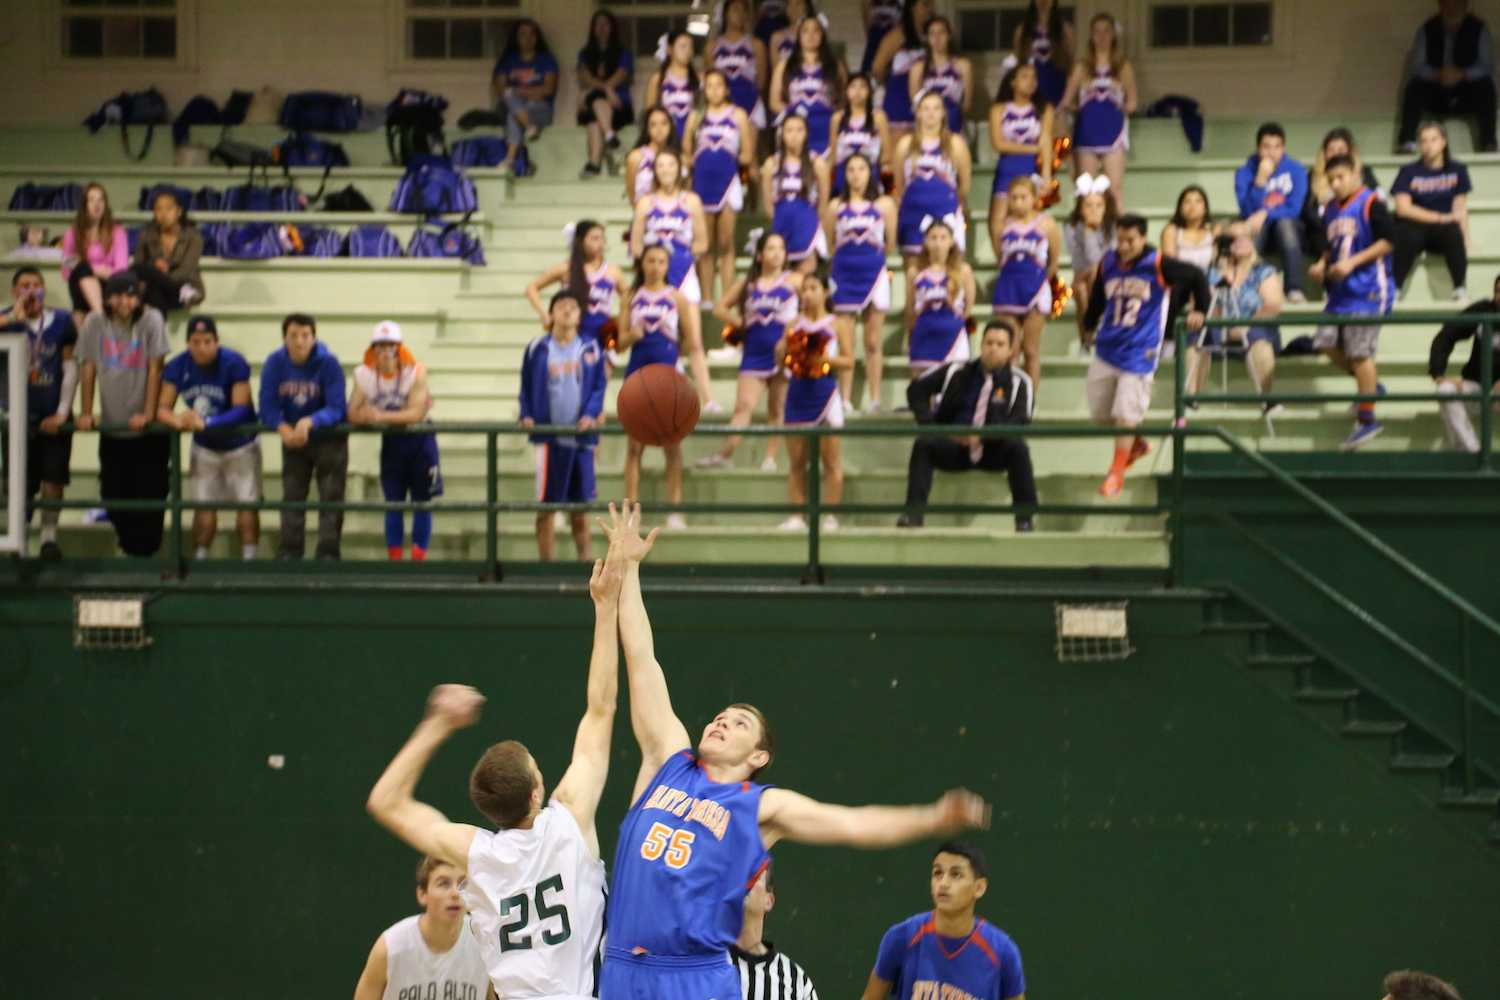 Justin Hull ('16) wins the tip for the Viking's in their last game of the season.